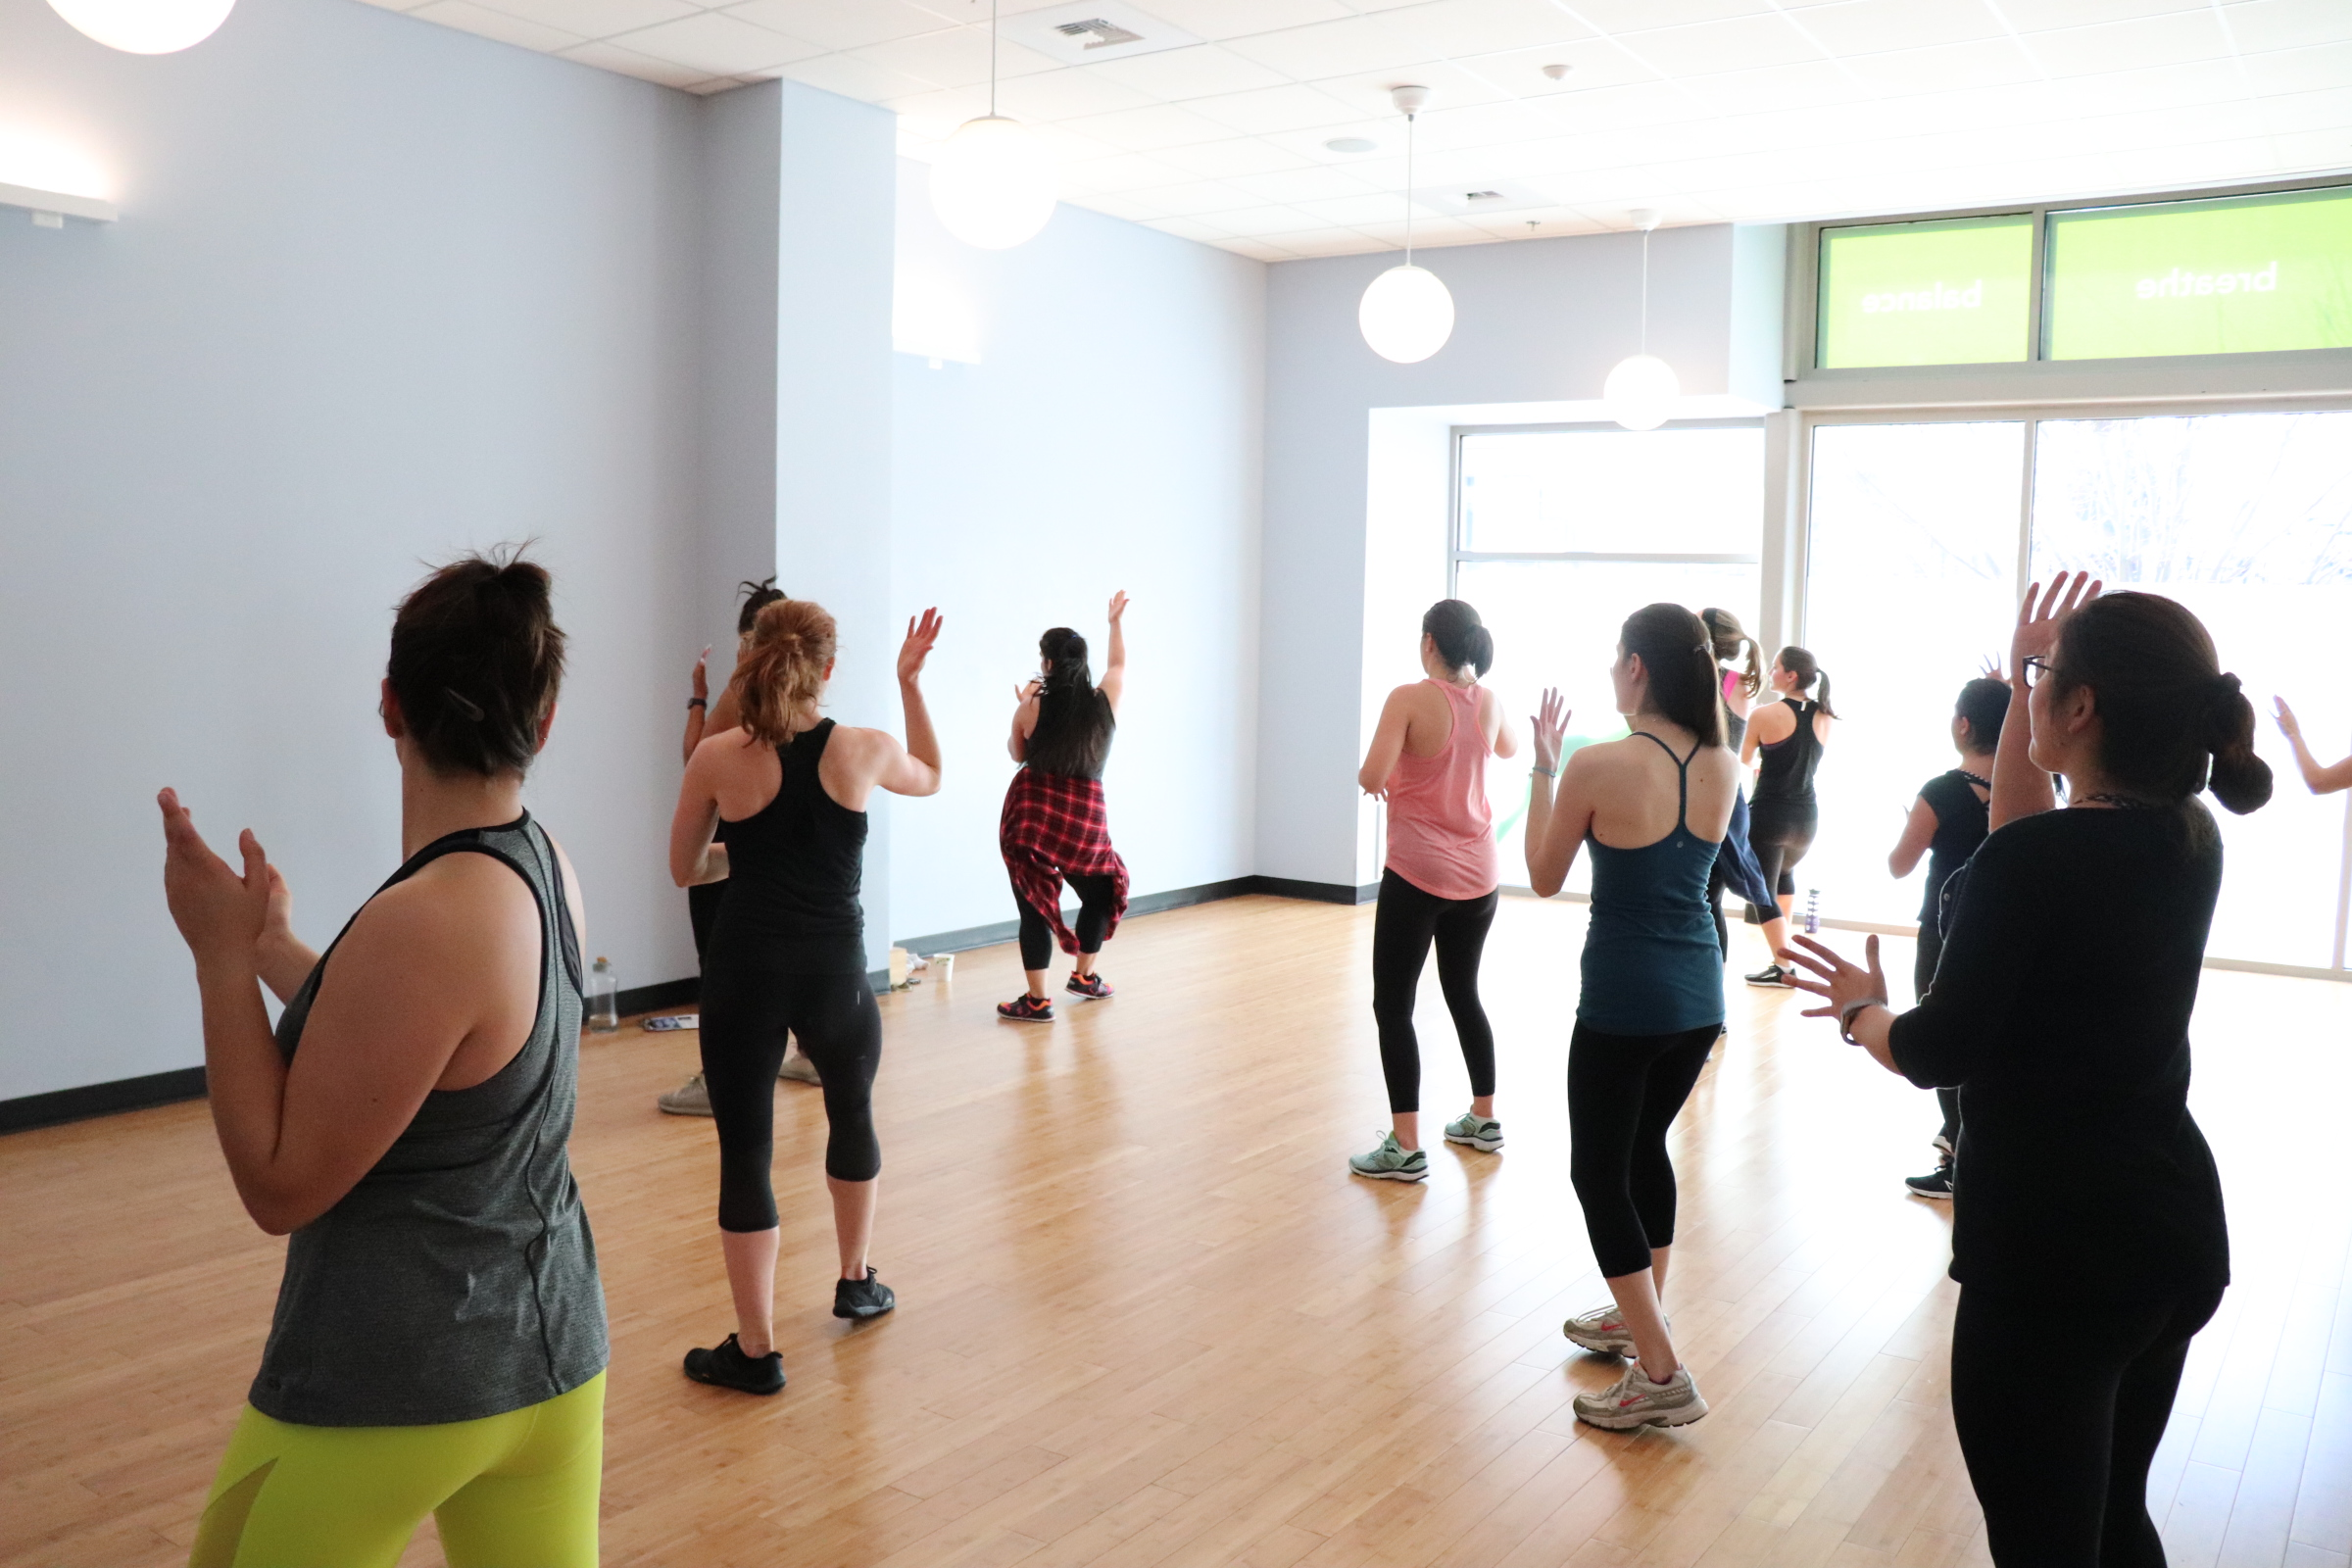 Class at YogaWorks on 14th! Thanks to @ilovegueli for photos